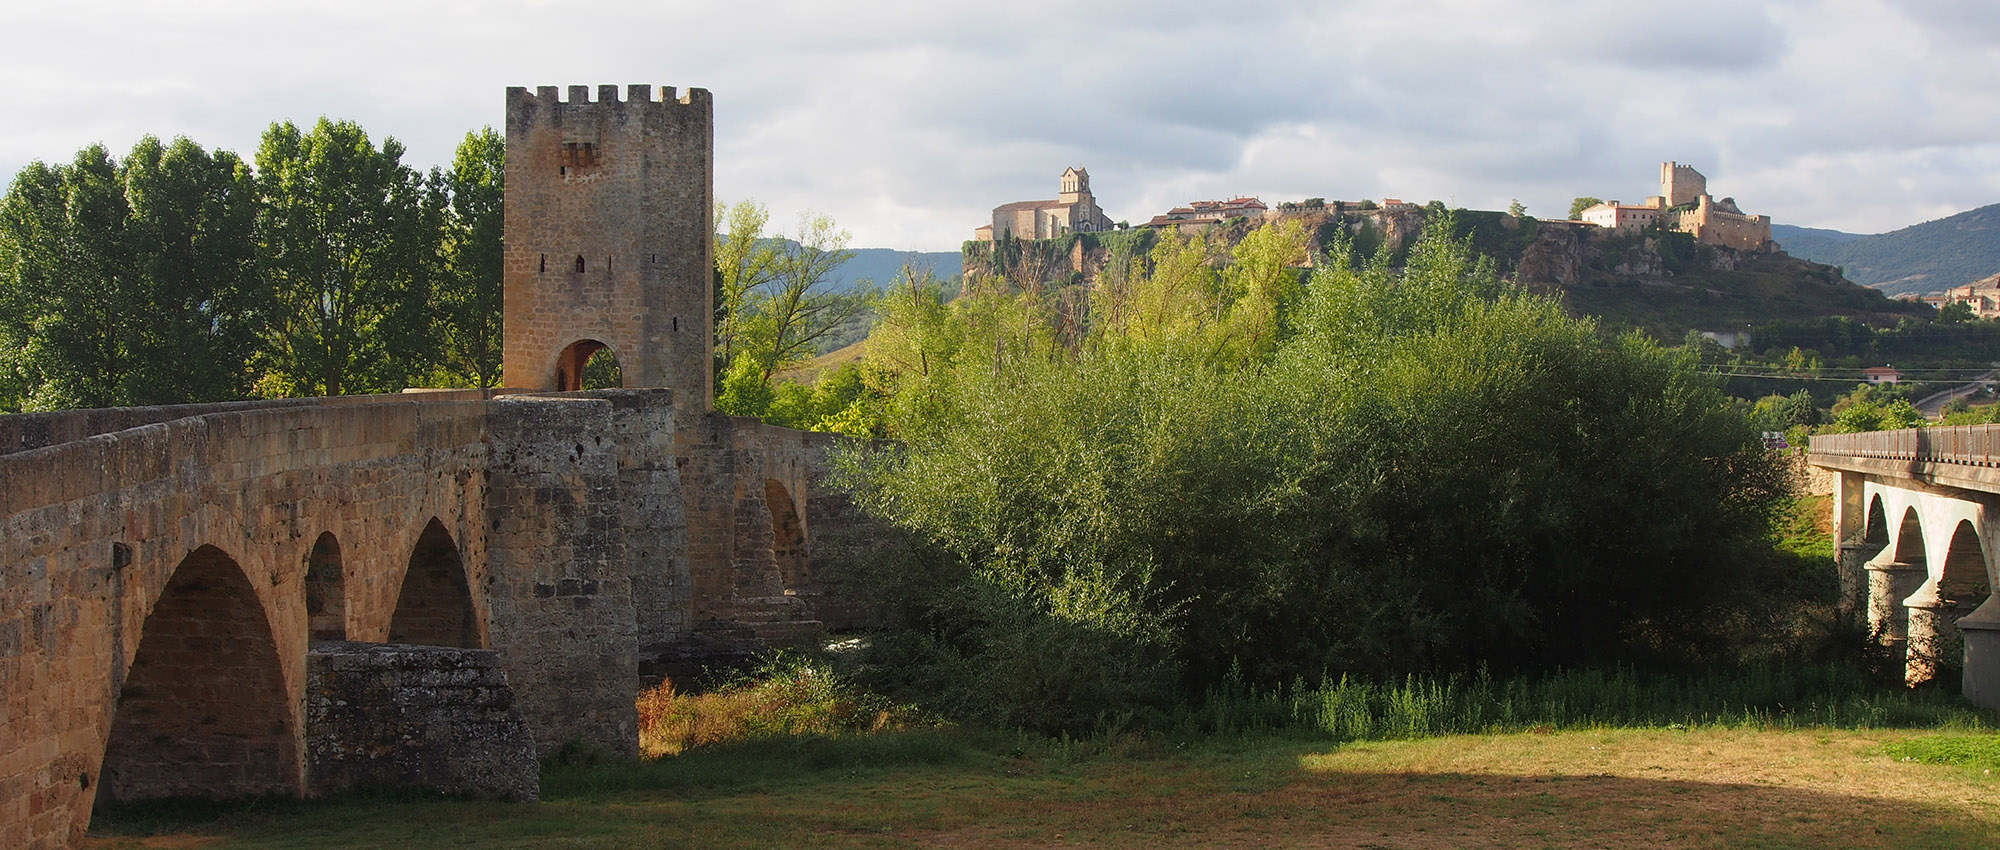 Medieval Ebro bridge and fortified town of Frias